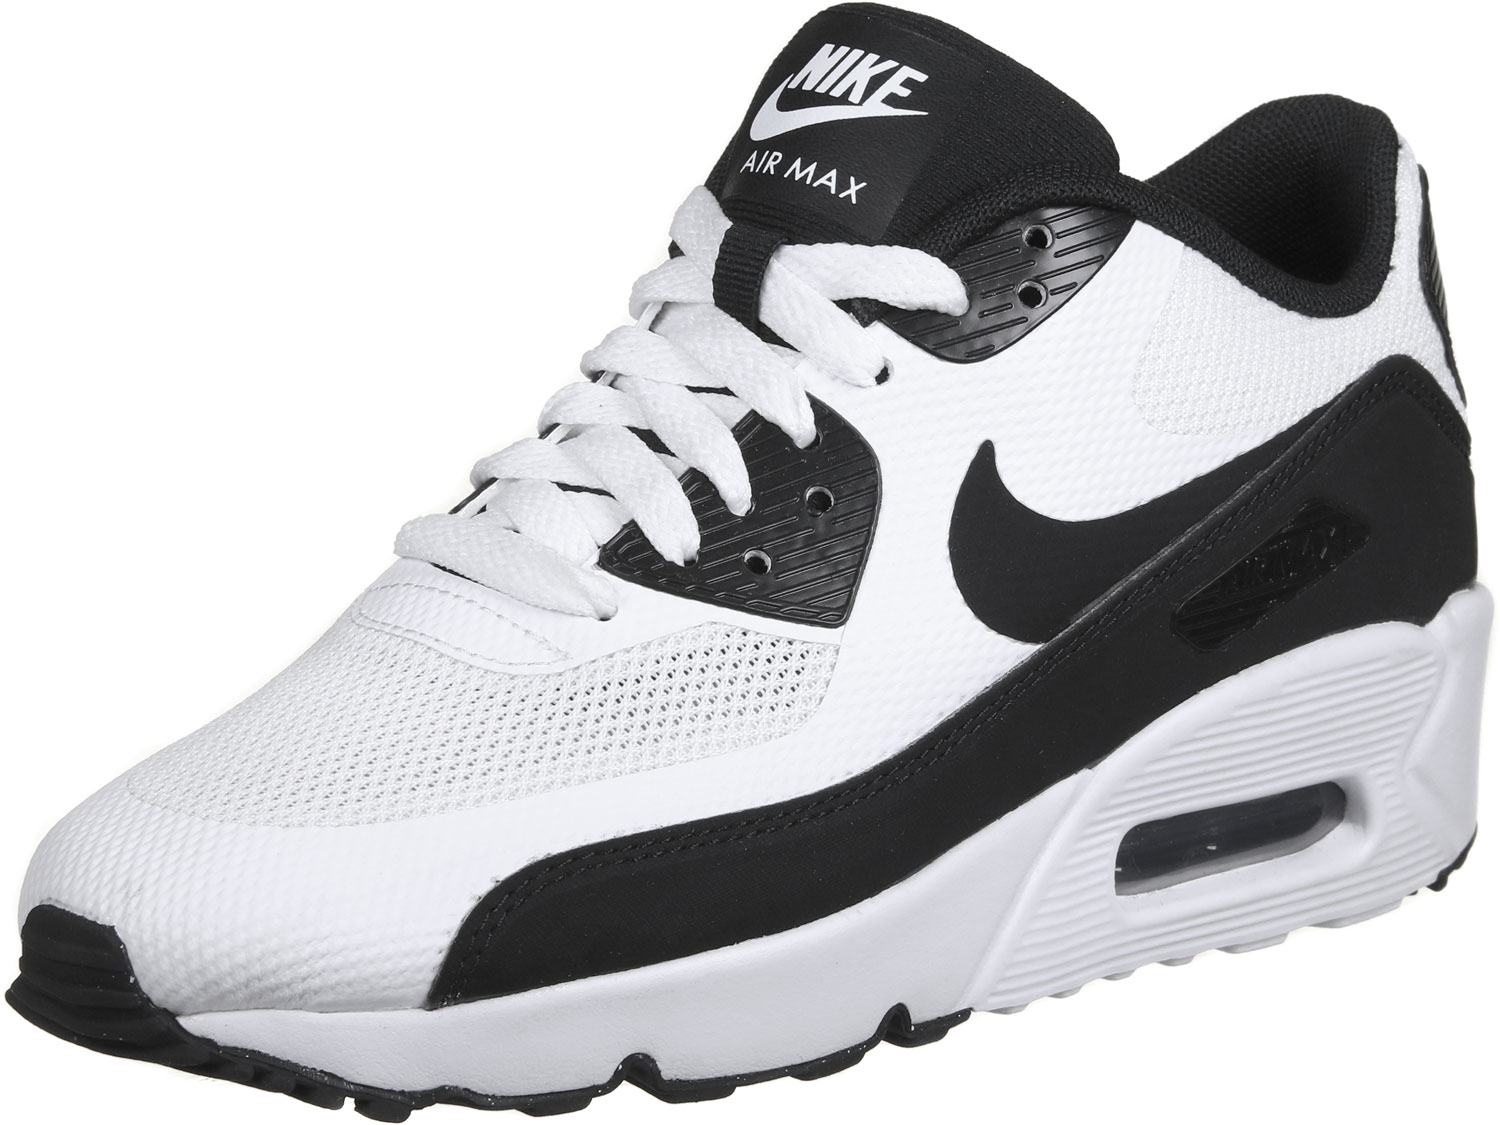 b9c420b055 ... where can i buy nike air max 90 youth gs chaussures noir 631c6 fb7c1 ...